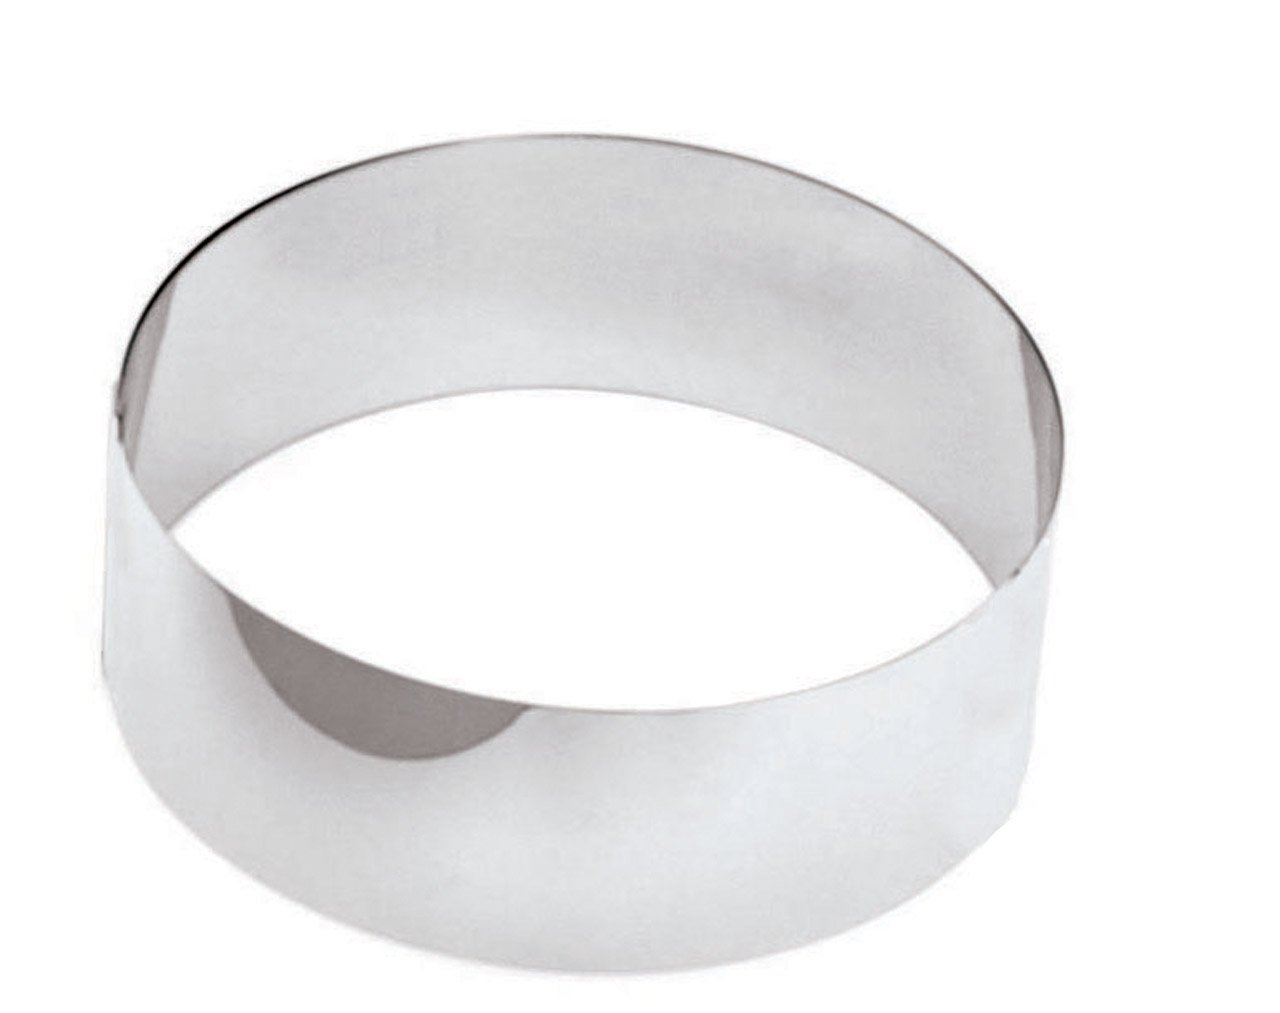 Paderno World Cuisine 4 Inch by 1 3/4 Inch Mousse Pastry Ring